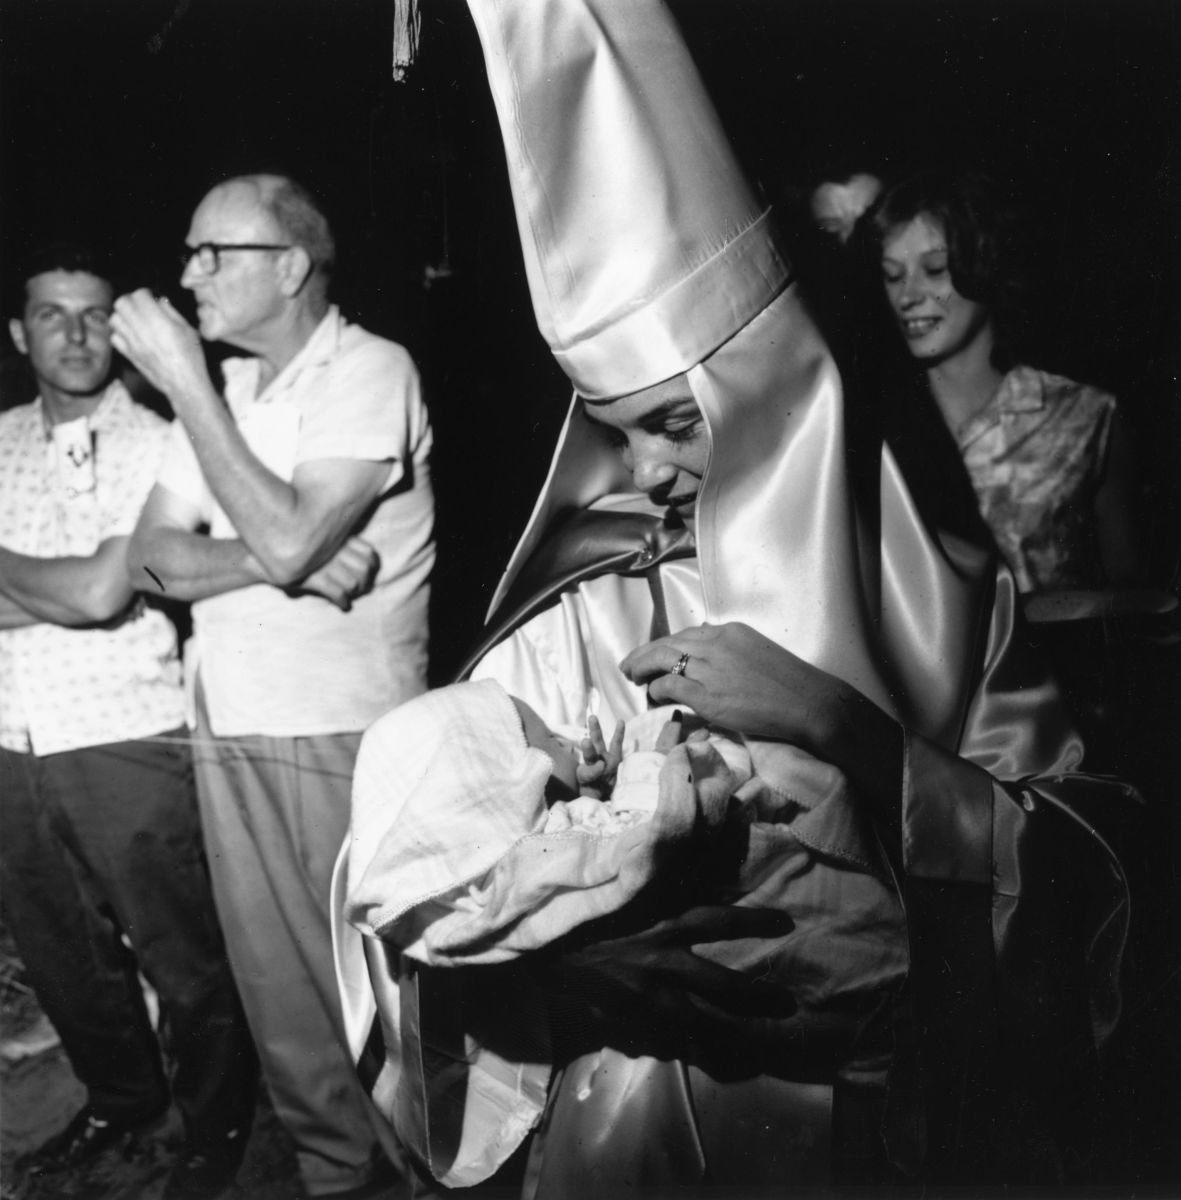 A woman wearing the robes and hood of the Ku Klux Klan holds her baby at a Klan meeting in Beaufort, South Carolina, on May 24th, 1965.